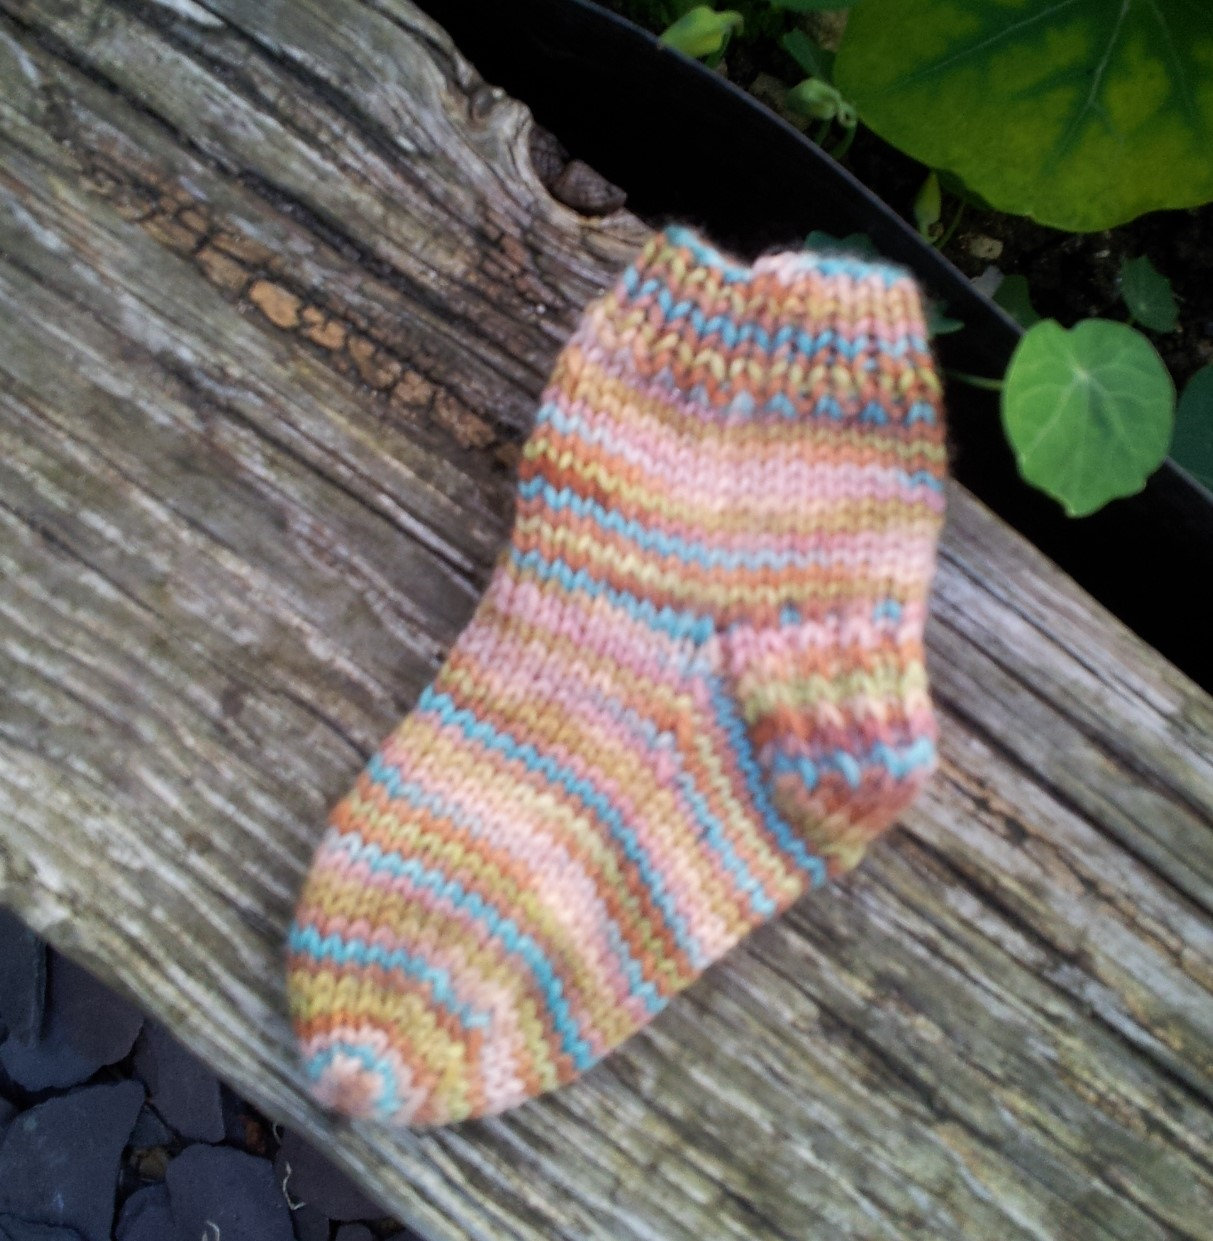 LEARNING TO KNIT SOCKS